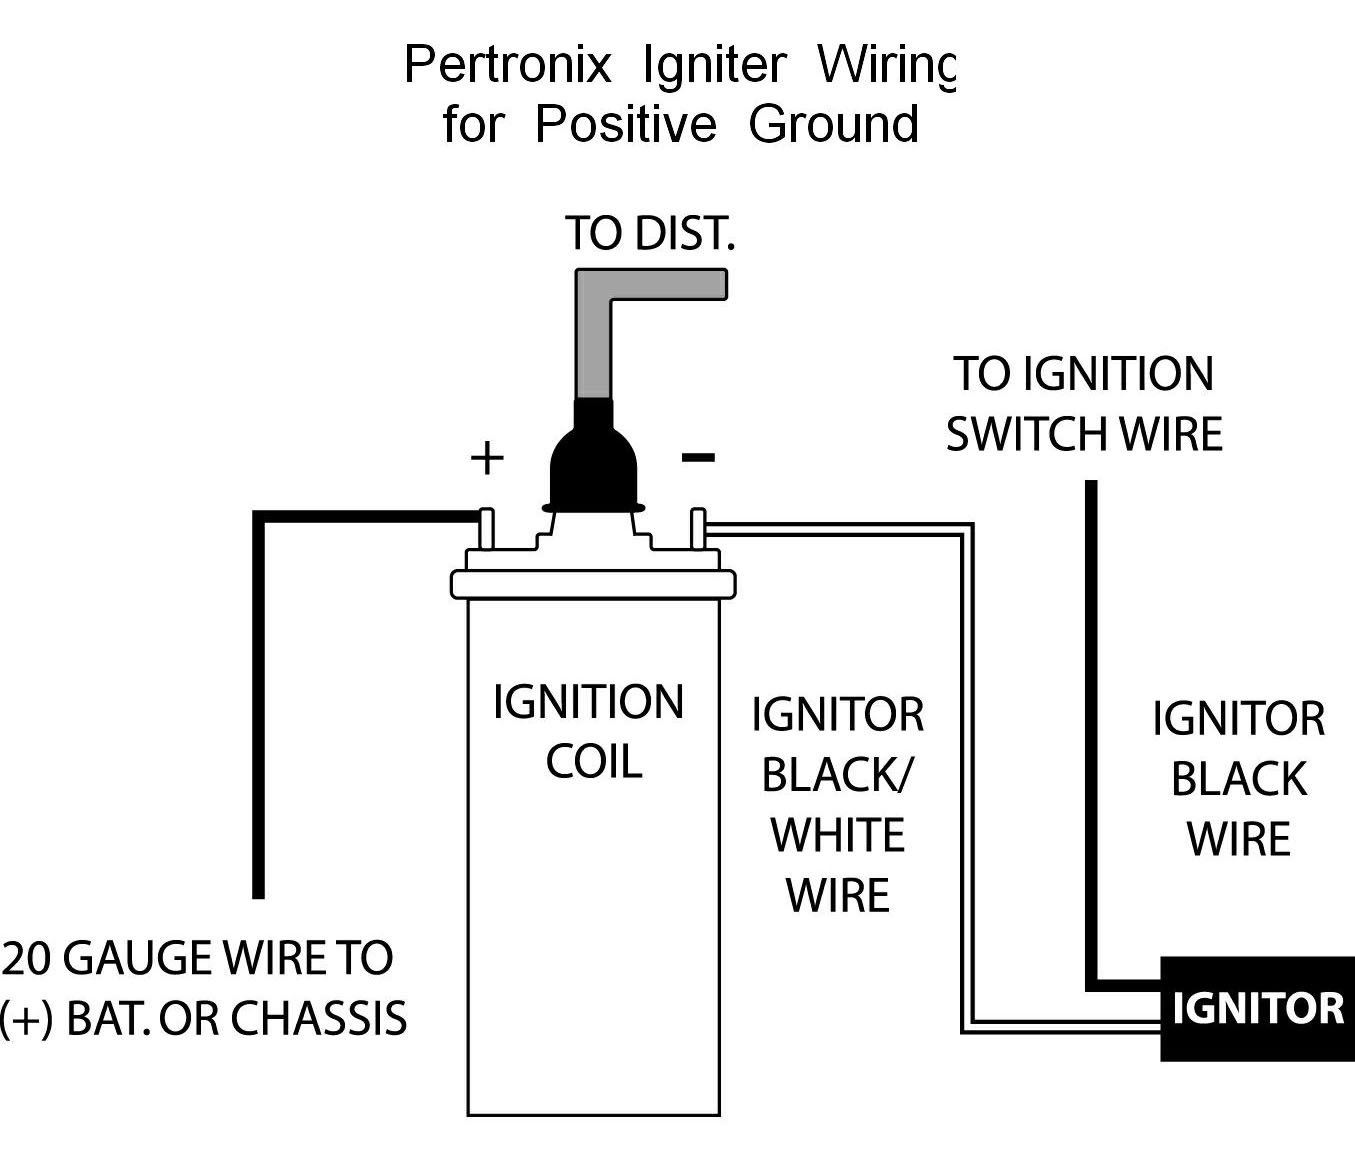 ignition coil wiring diagram positive earth wiring info u2022 rh cardsbox co ignition coil wiring diagram with resistor ignition coil wiring diagram motorcycles